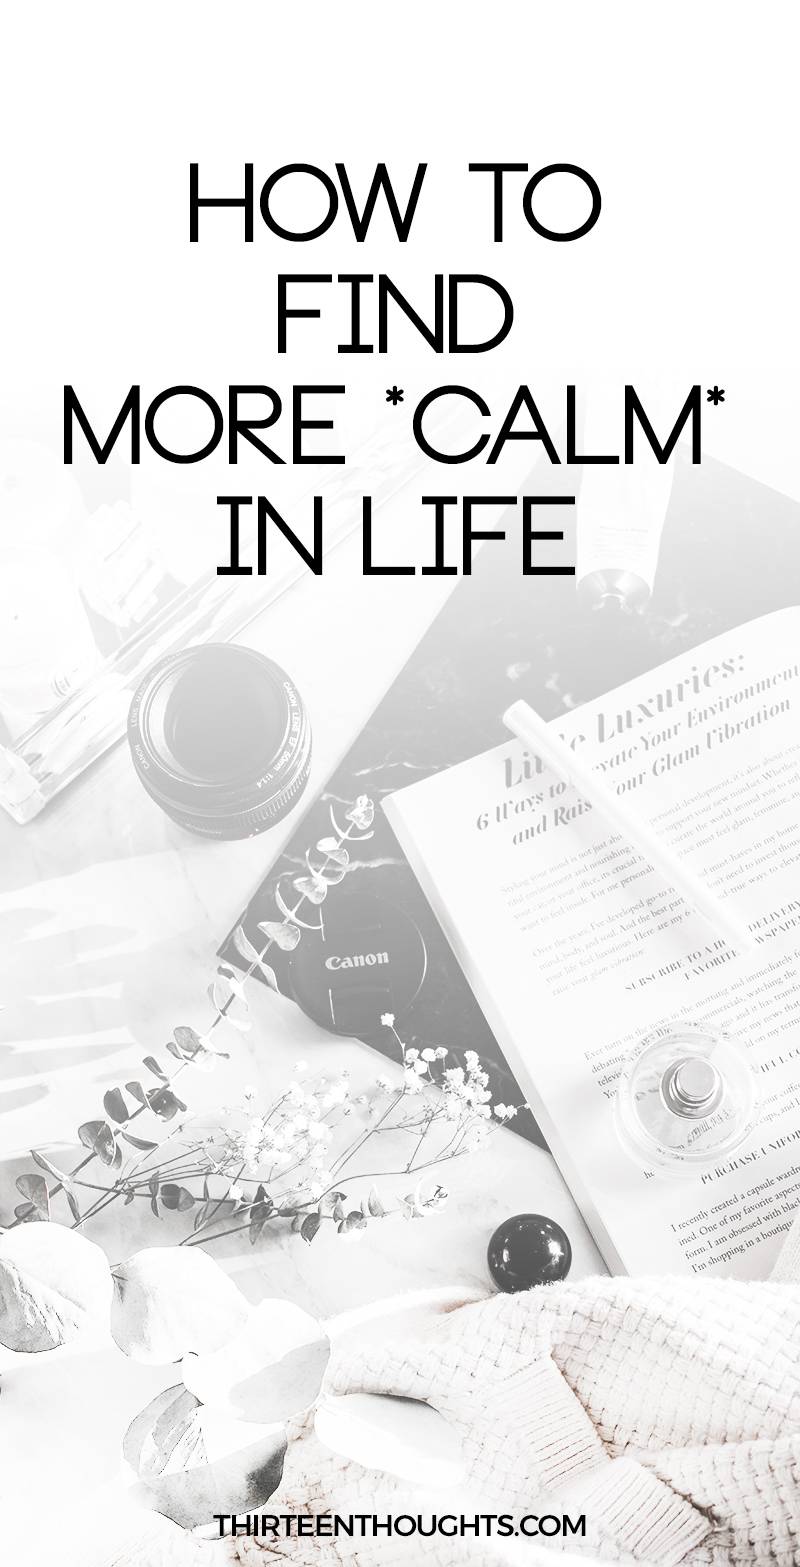 How to find more calm in life